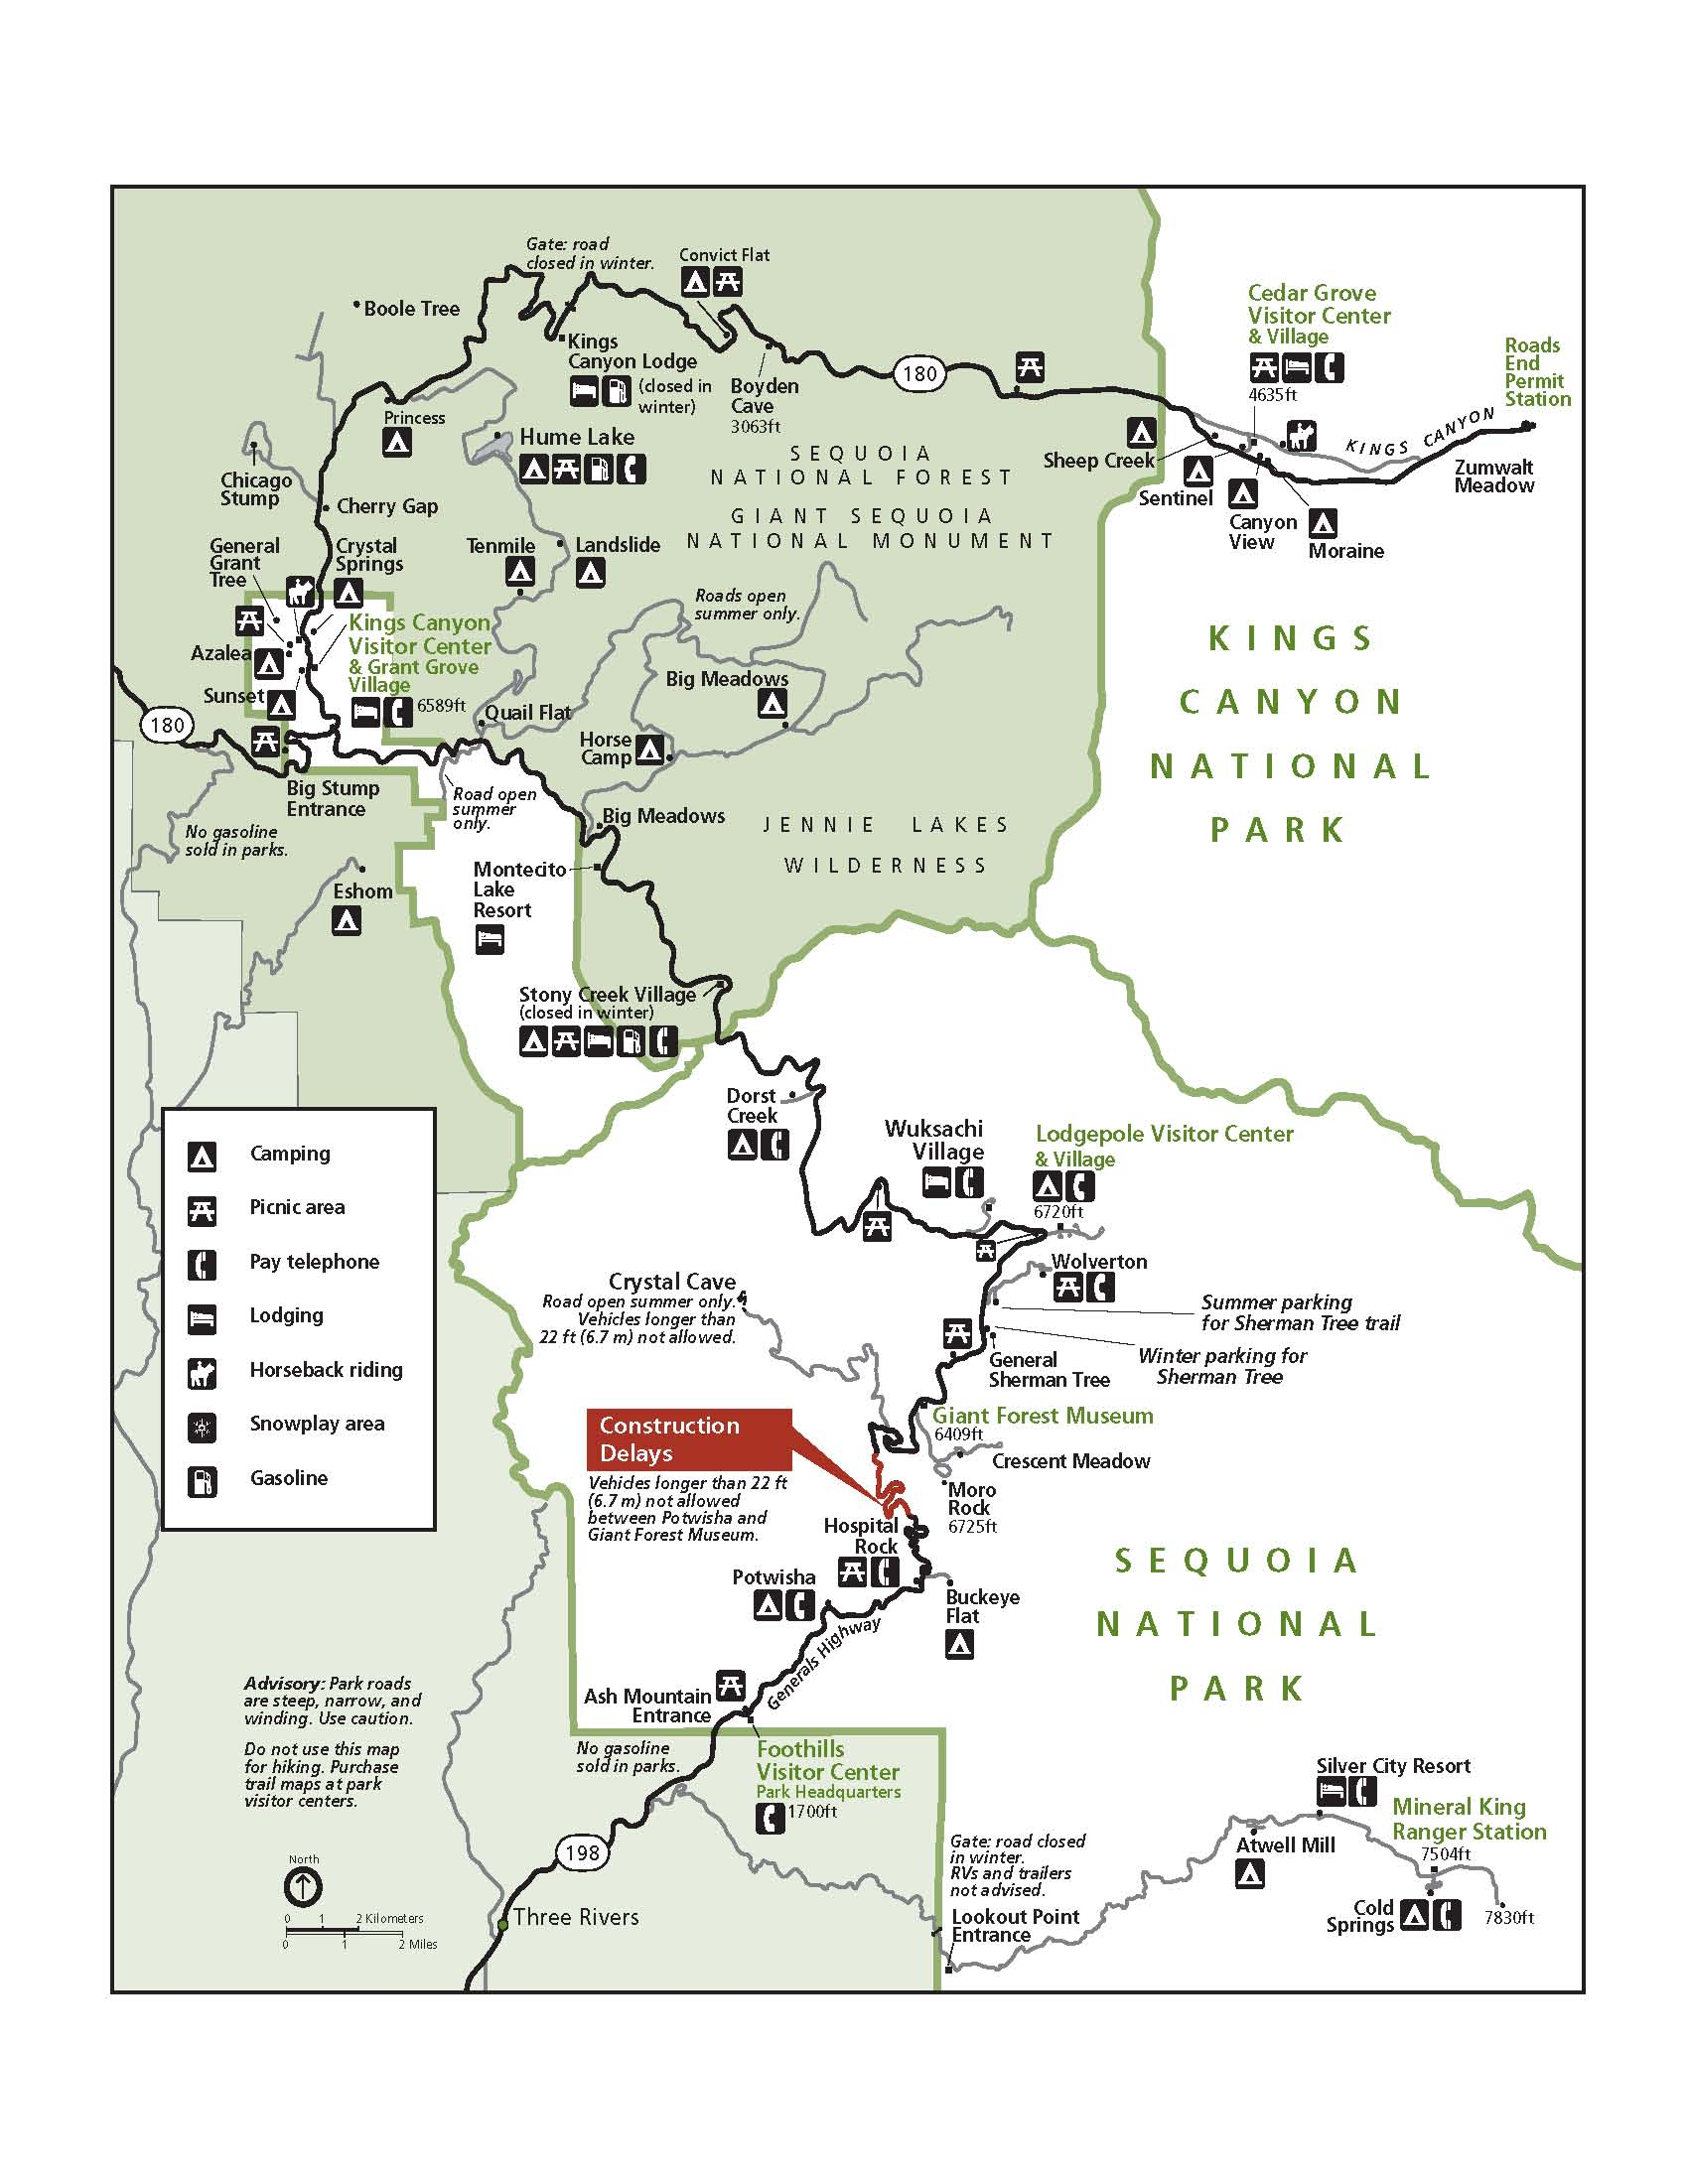 Map of Road Construction Location in Sequoia National Park